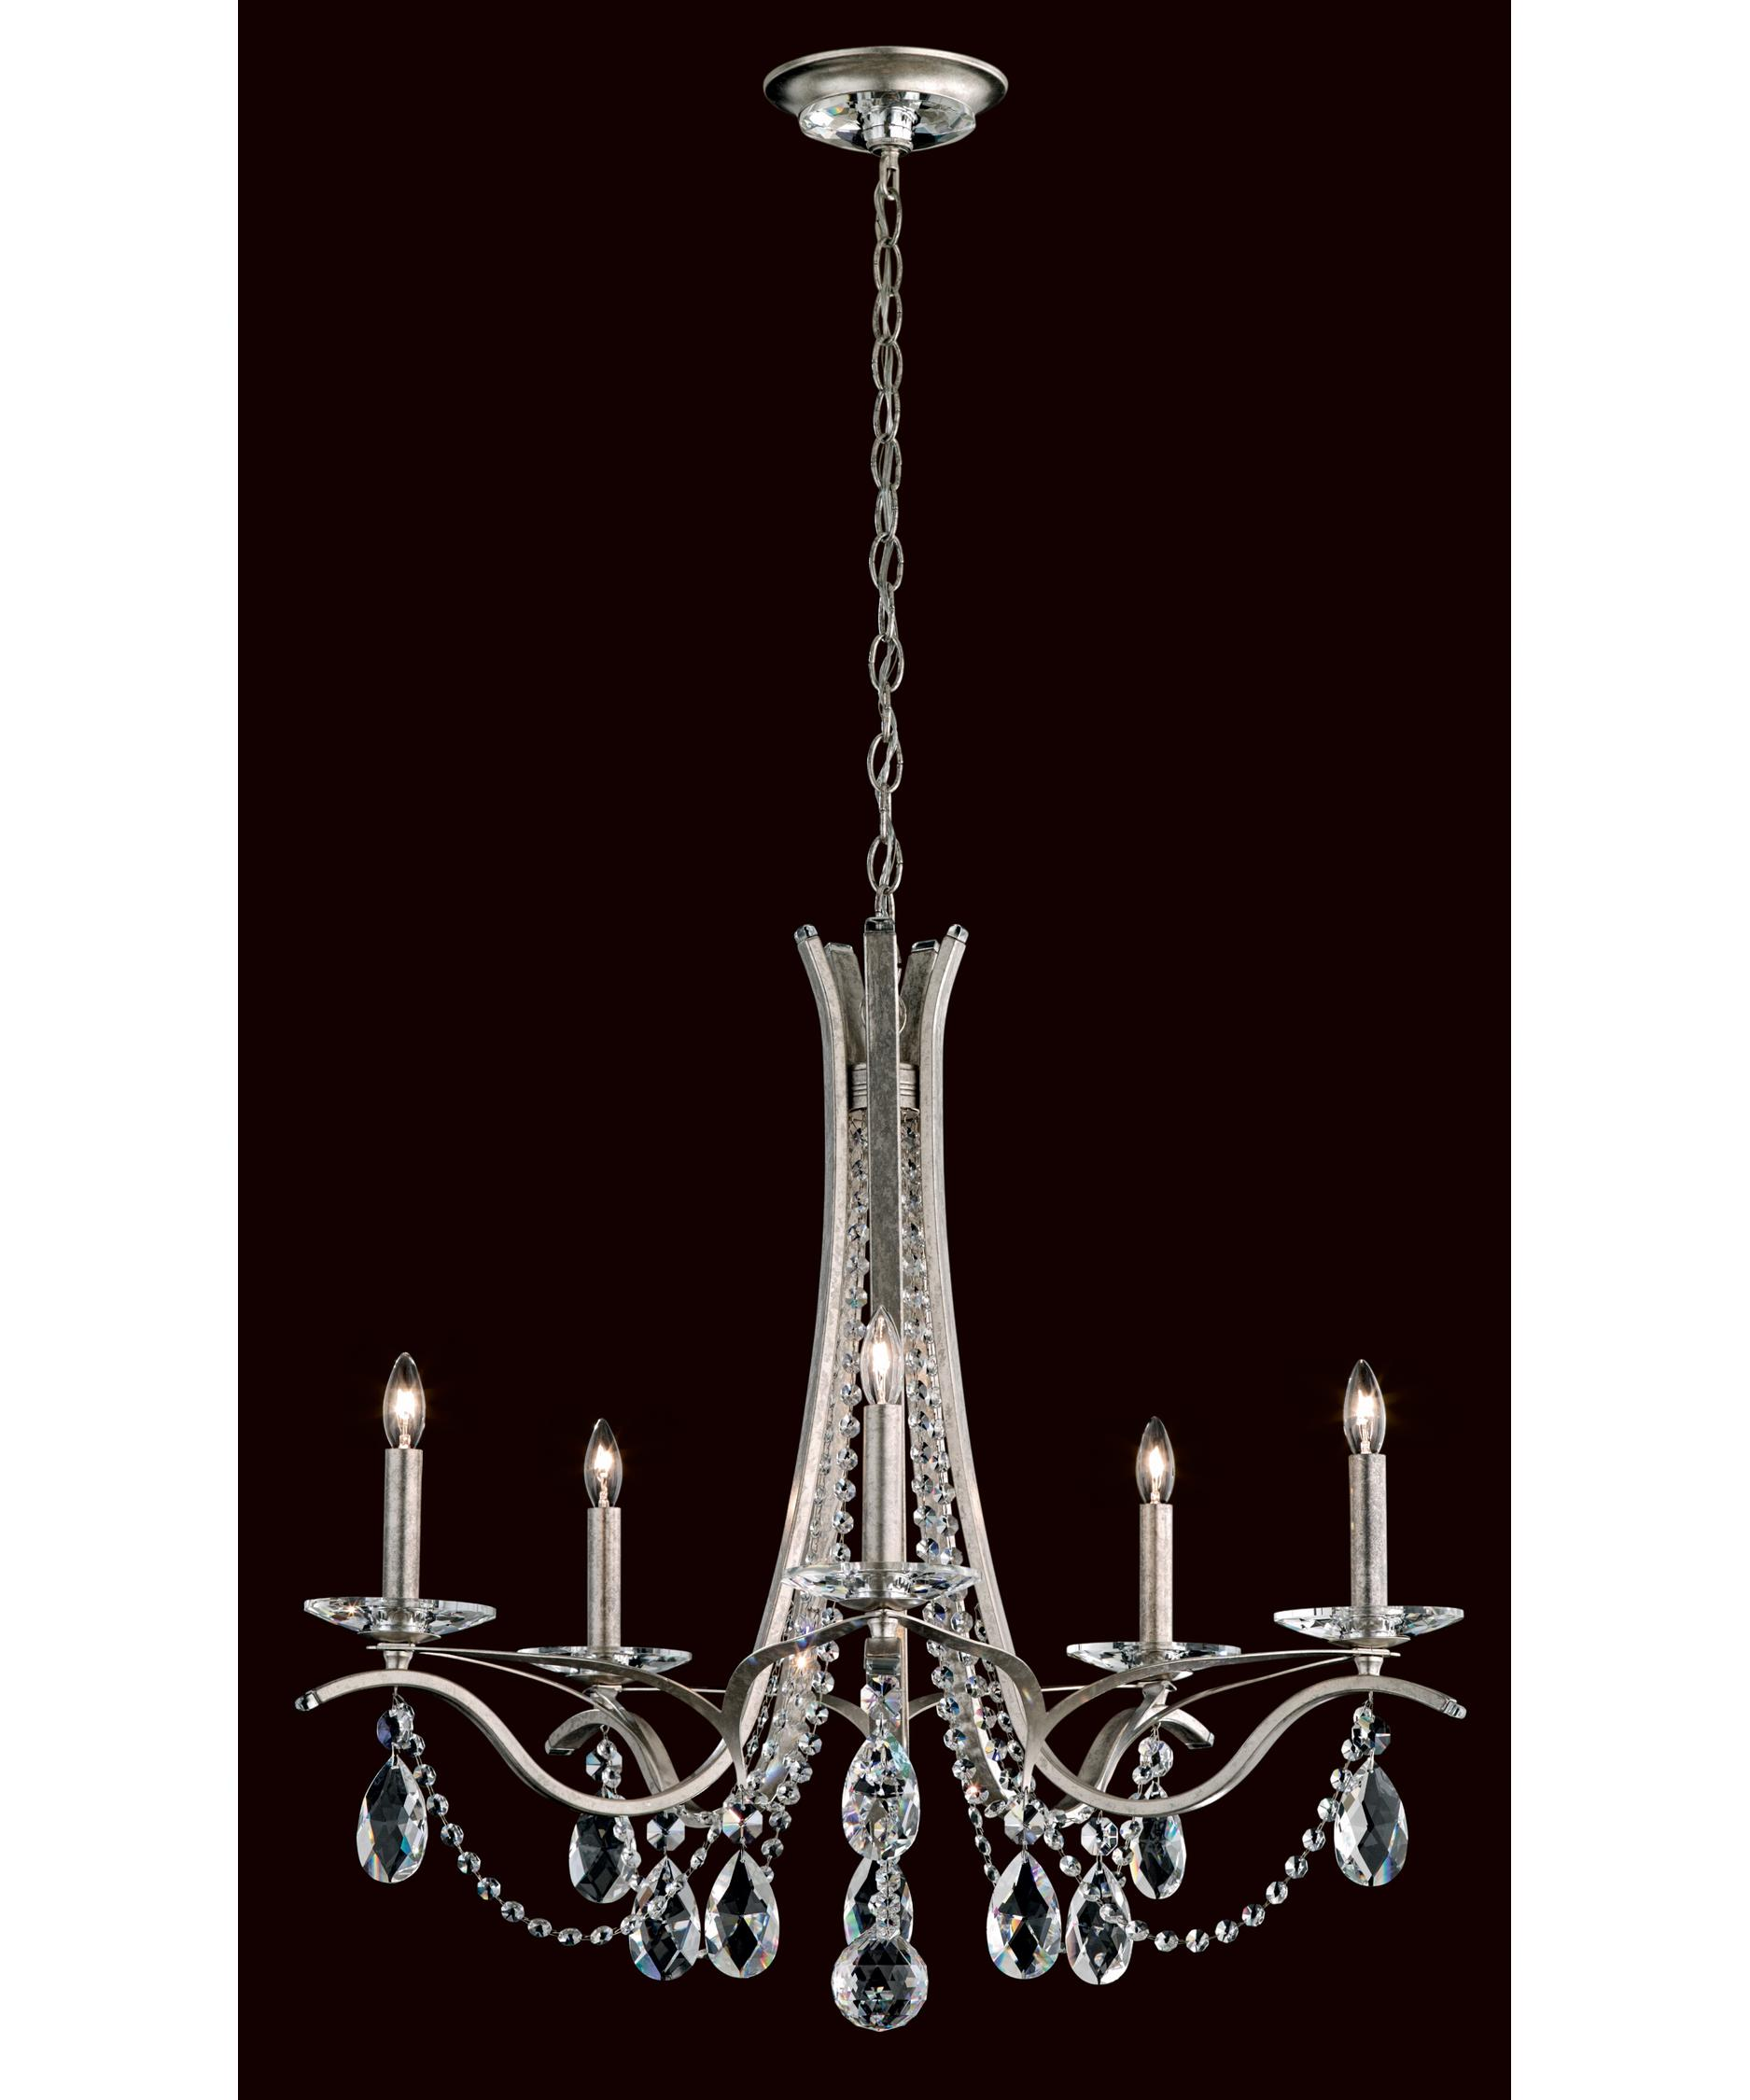 Schonbek Vesca Chandelier: Crystal Lighting Fixtures